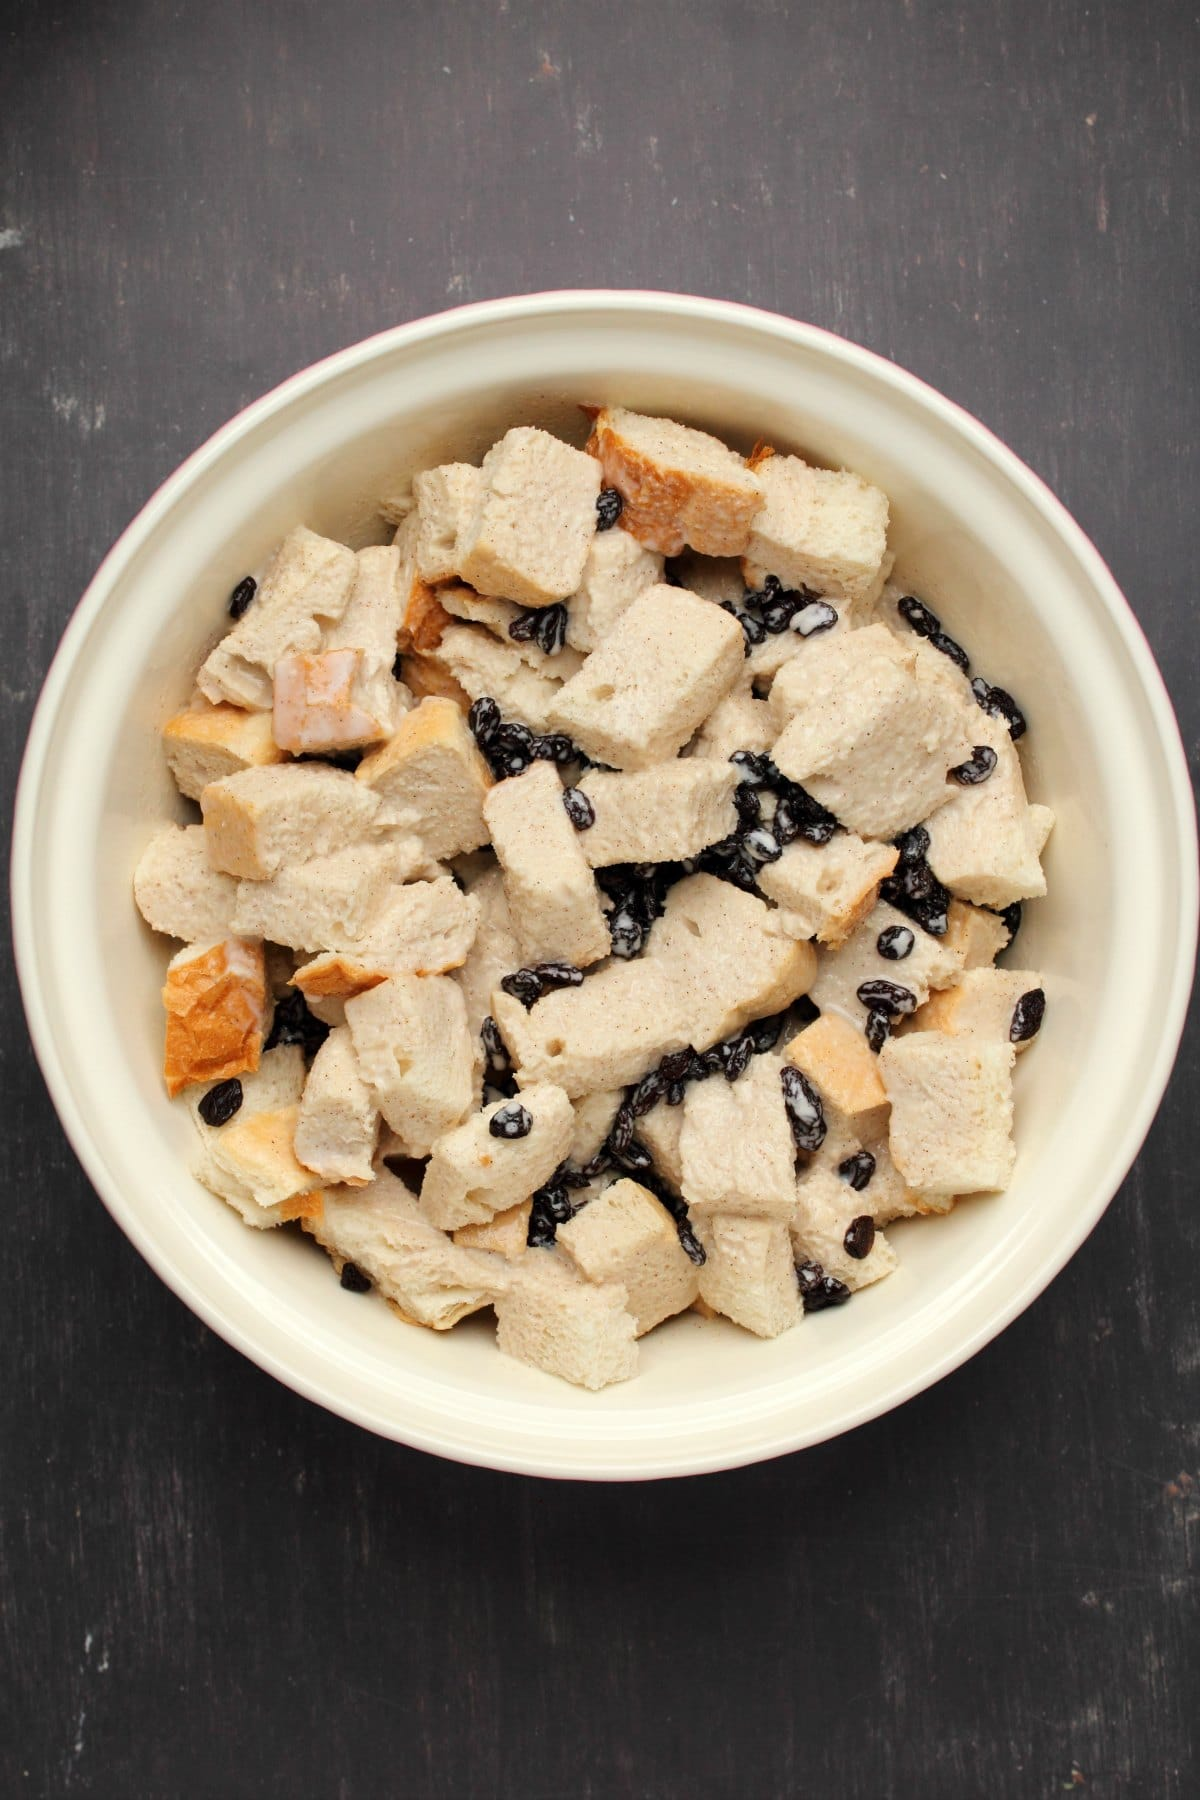 Blended mix poured over bread and raisins in mixing bowl and tossed.